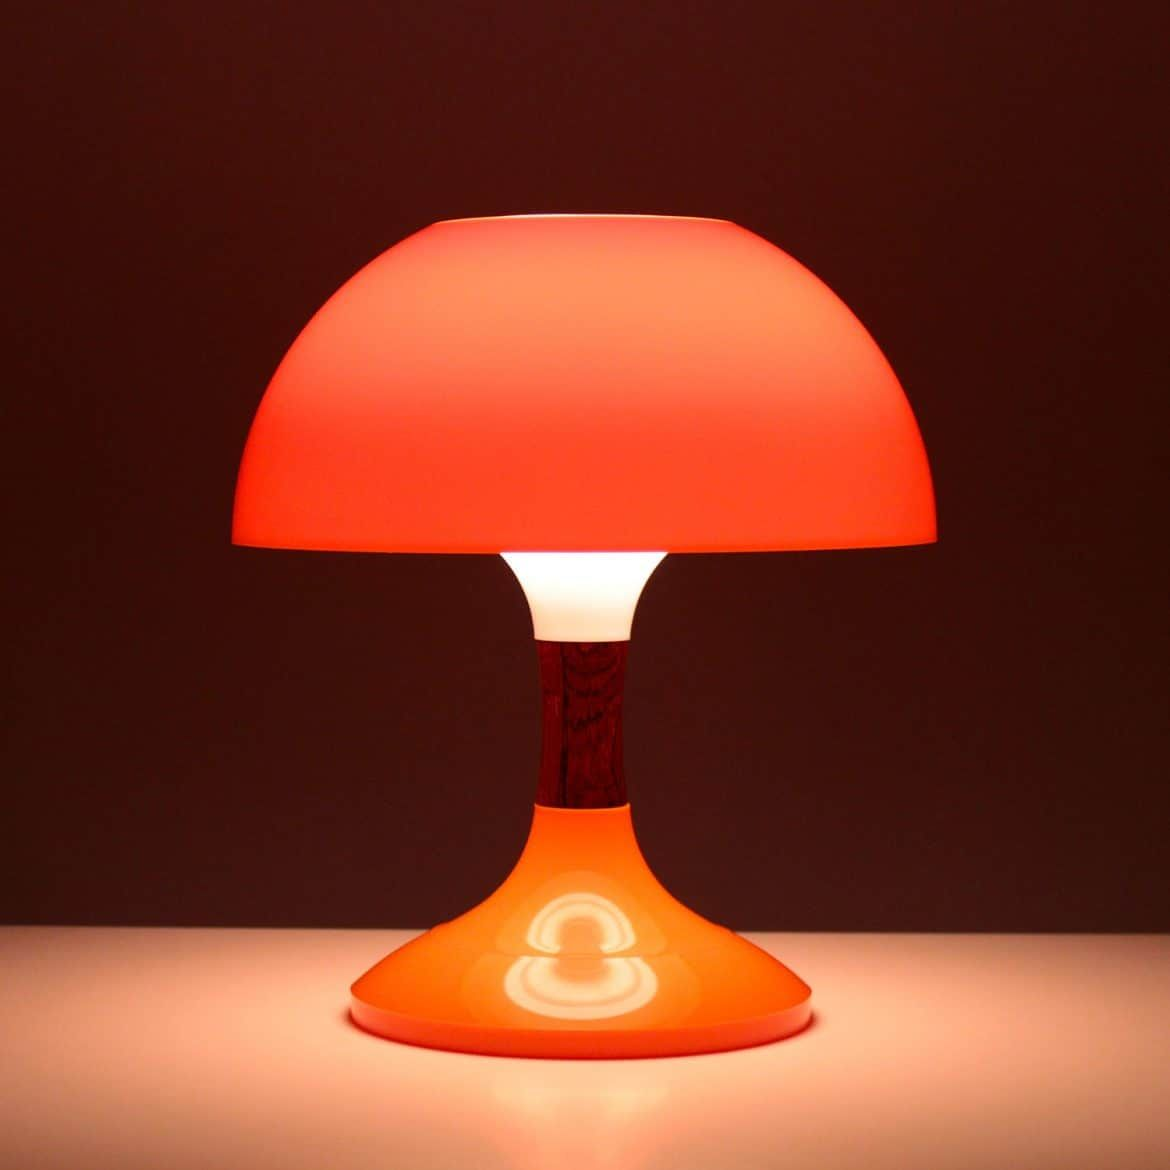 half lamps orange lighting moon lamp karboxx mini light table eames